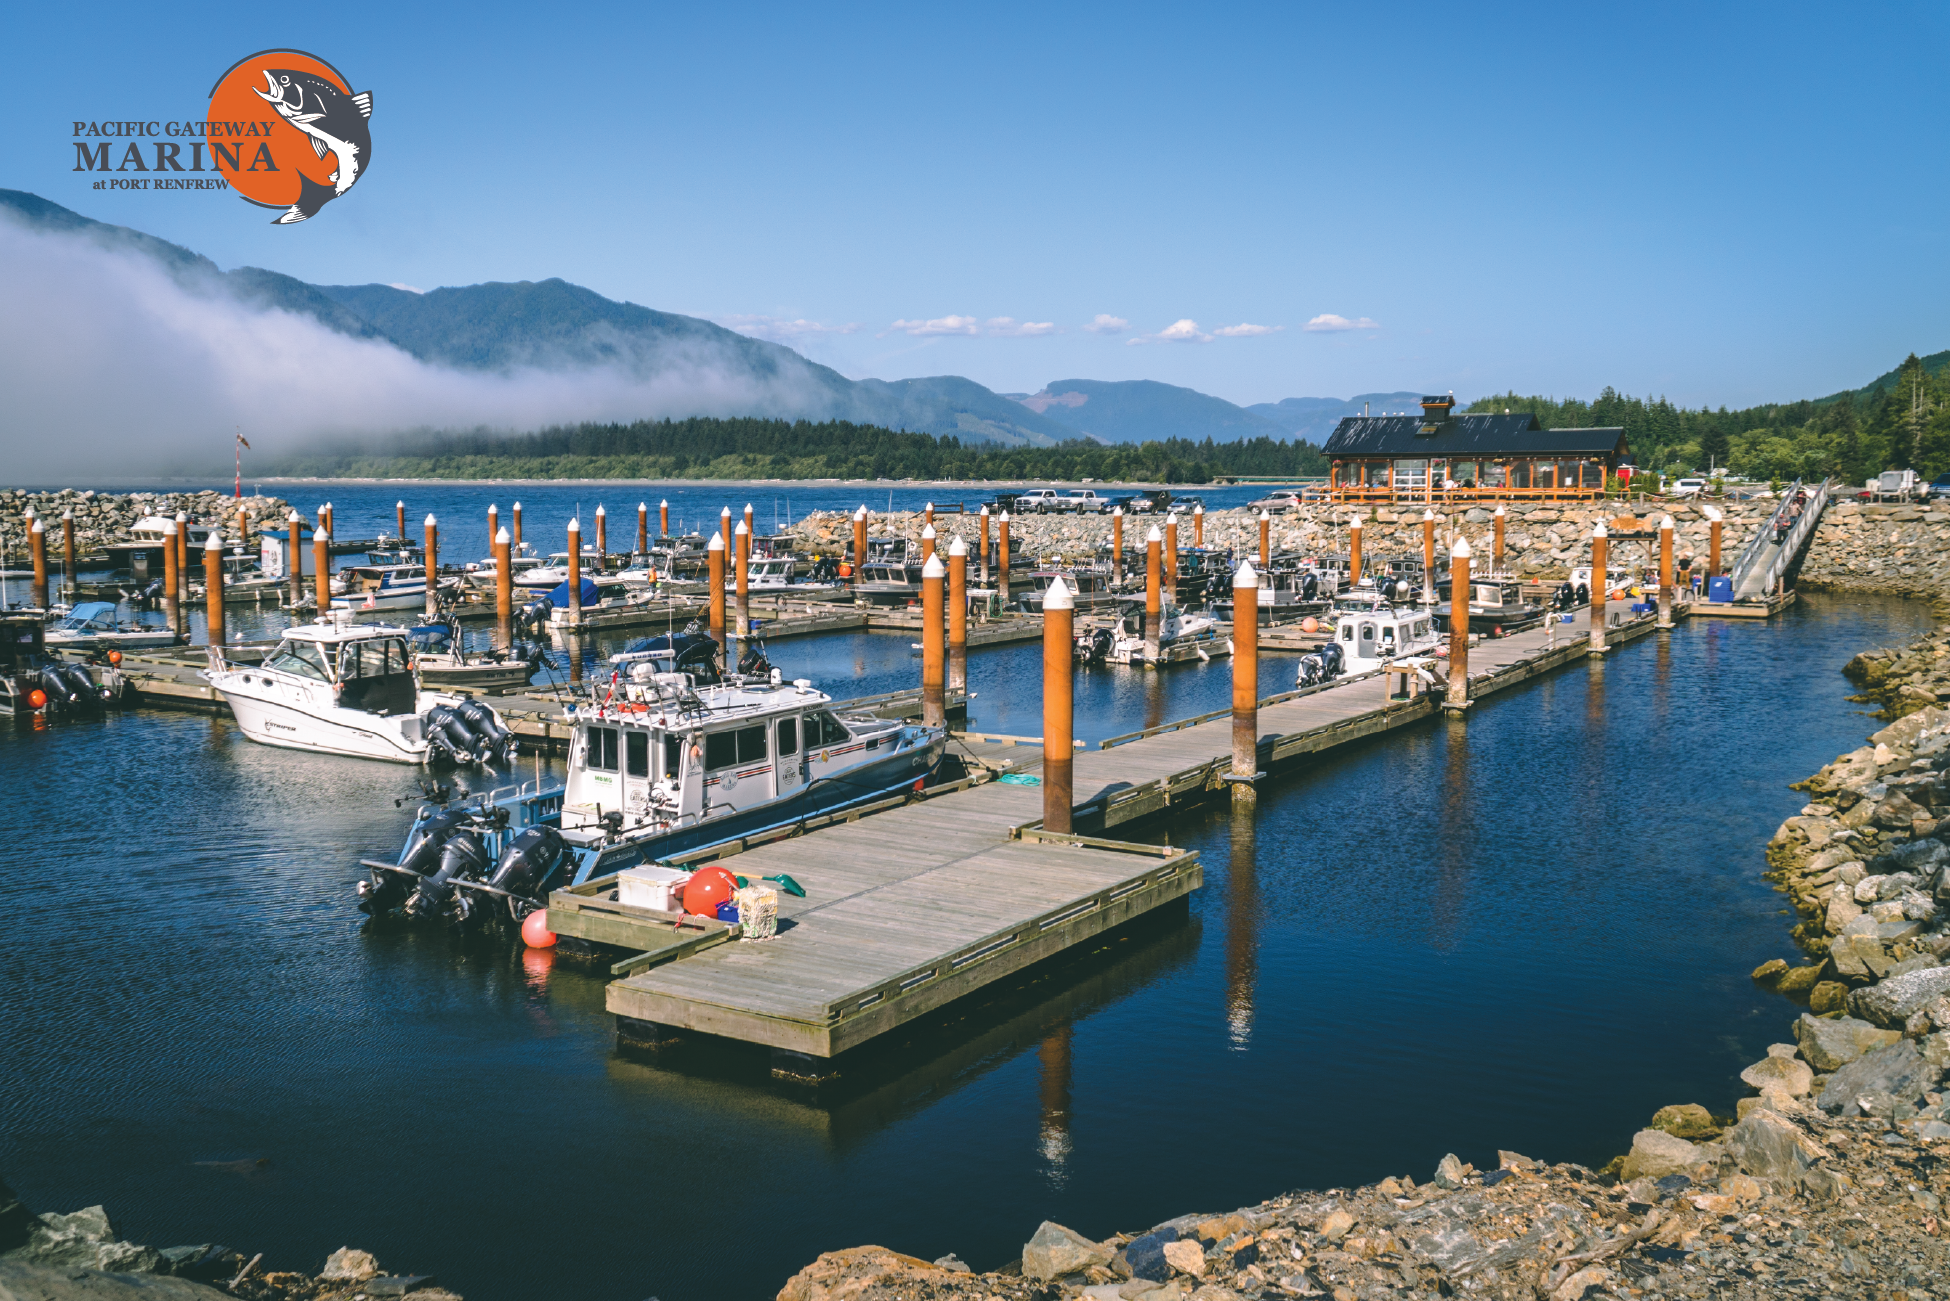 Pacific Gateway Marina   ,  Port Renfrew BC. There's a reason so many fisherman choose to call Pacific Gateway their home. It is the gateway to arguably the best salmon fishing in the world. Stop by to see for yourself and while you're there be sure to enjoy a unique ocean front dining experience at  Bridgemans West Coast Eatery .